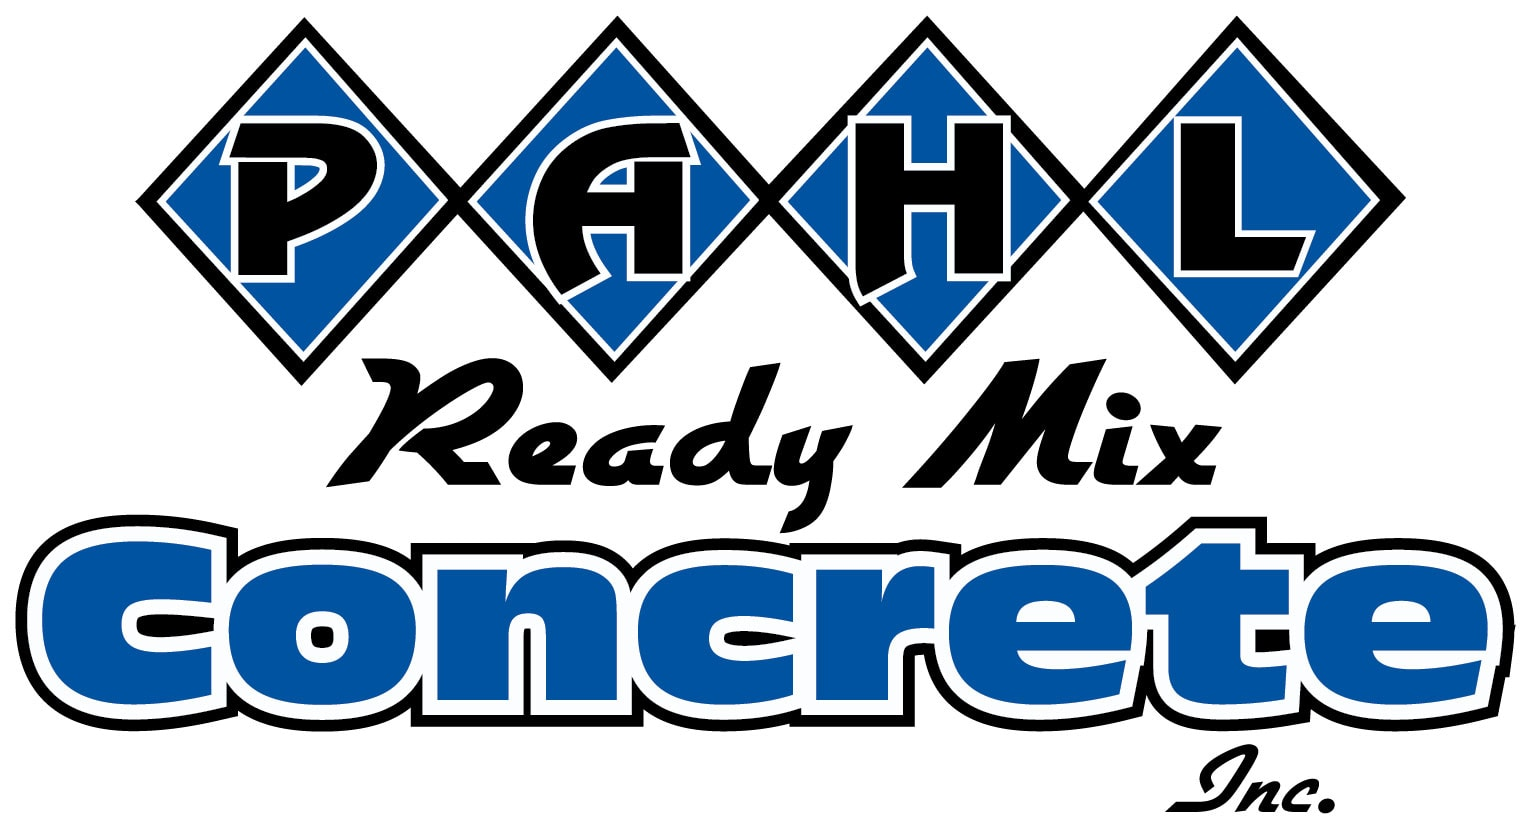 Pahl Ready Mix Concrete